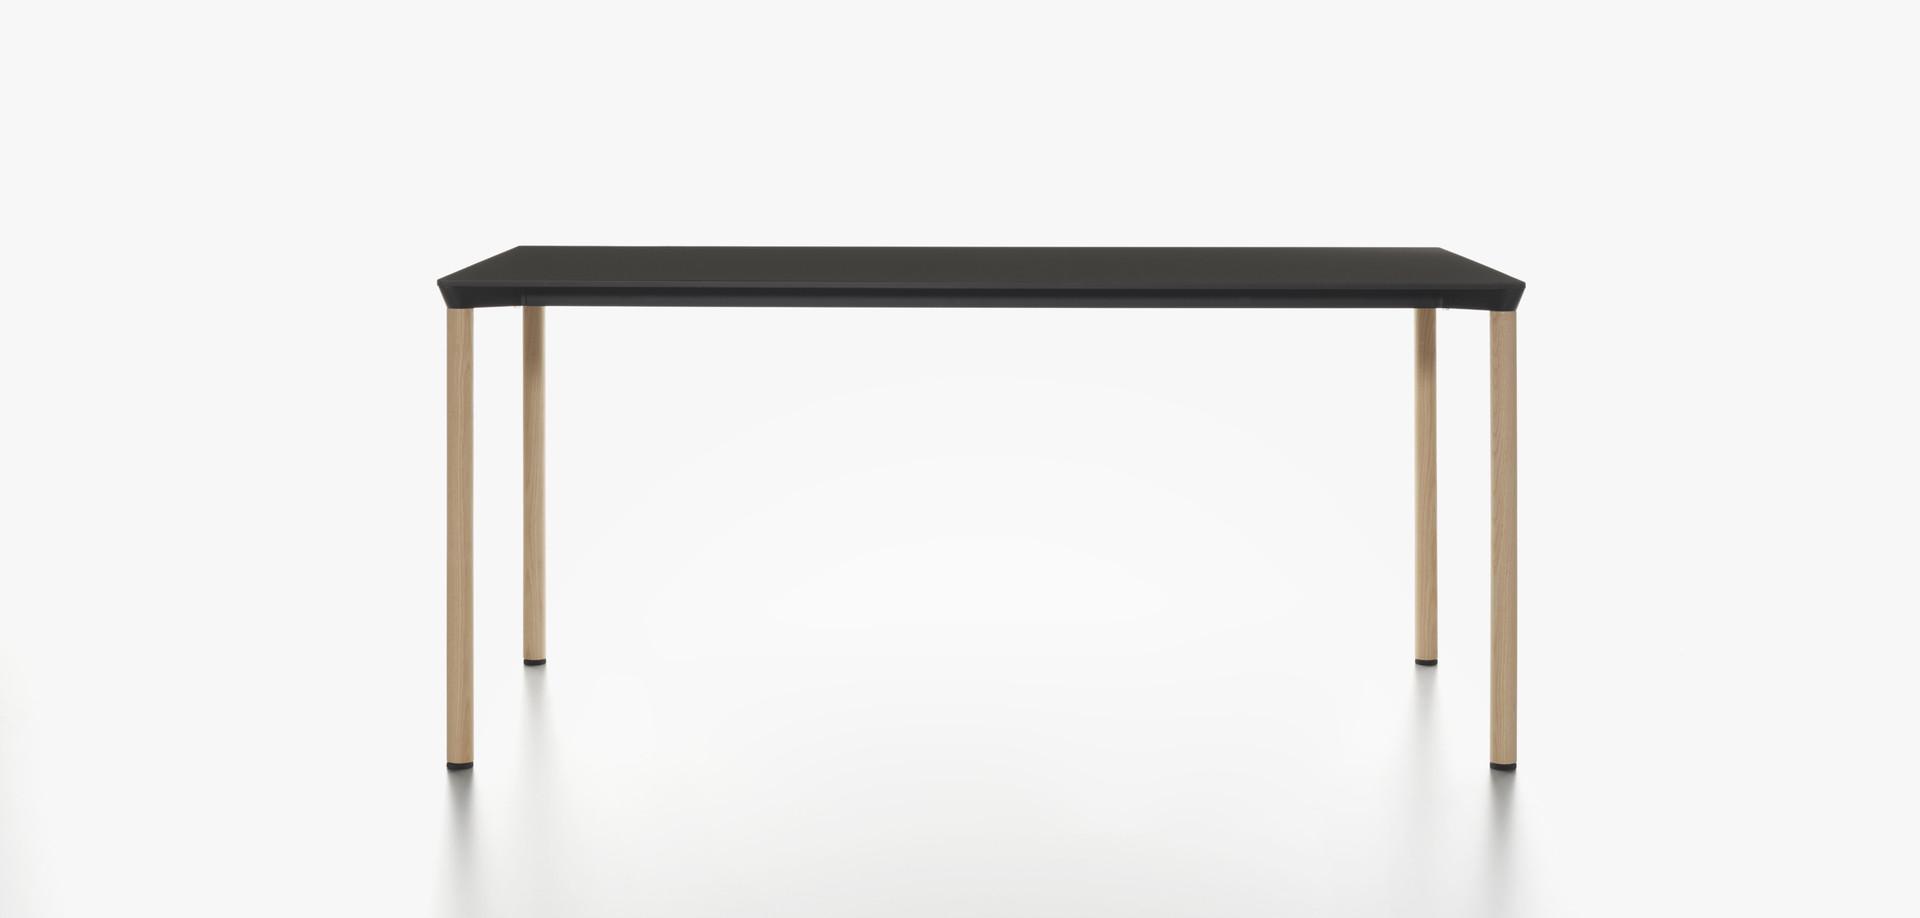 Plank - MONZA table rectangular, black HPL table top, natural ash legs